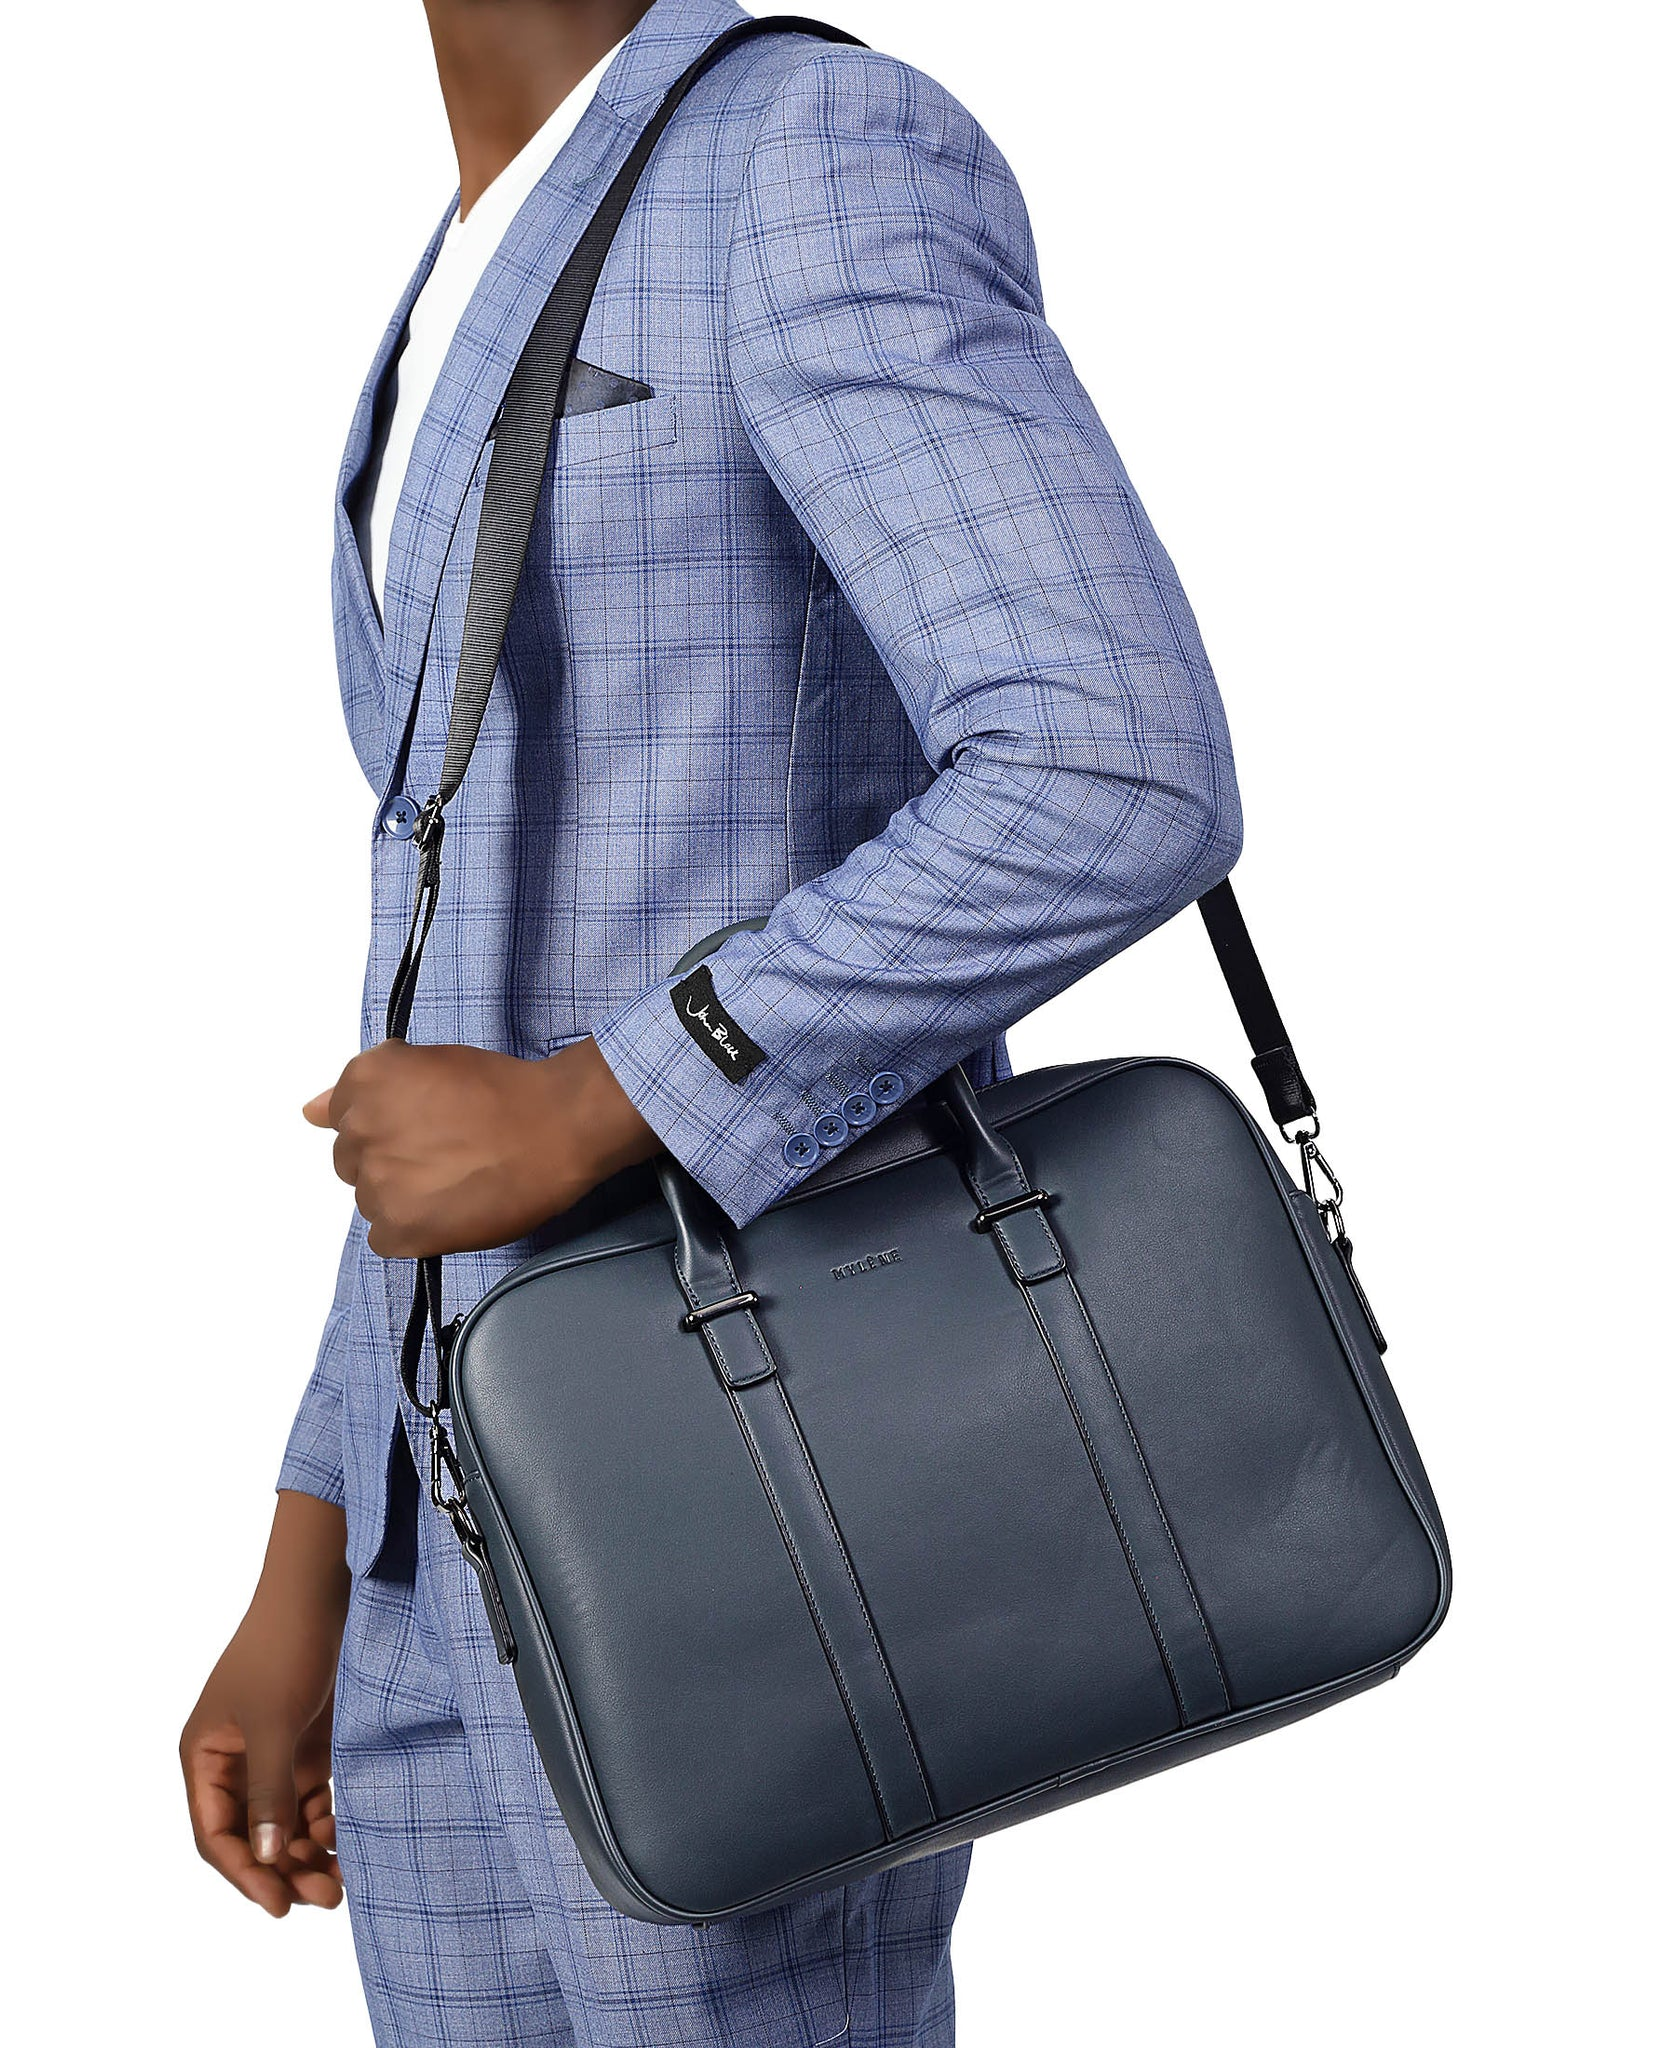 Laptop Bag - Blue